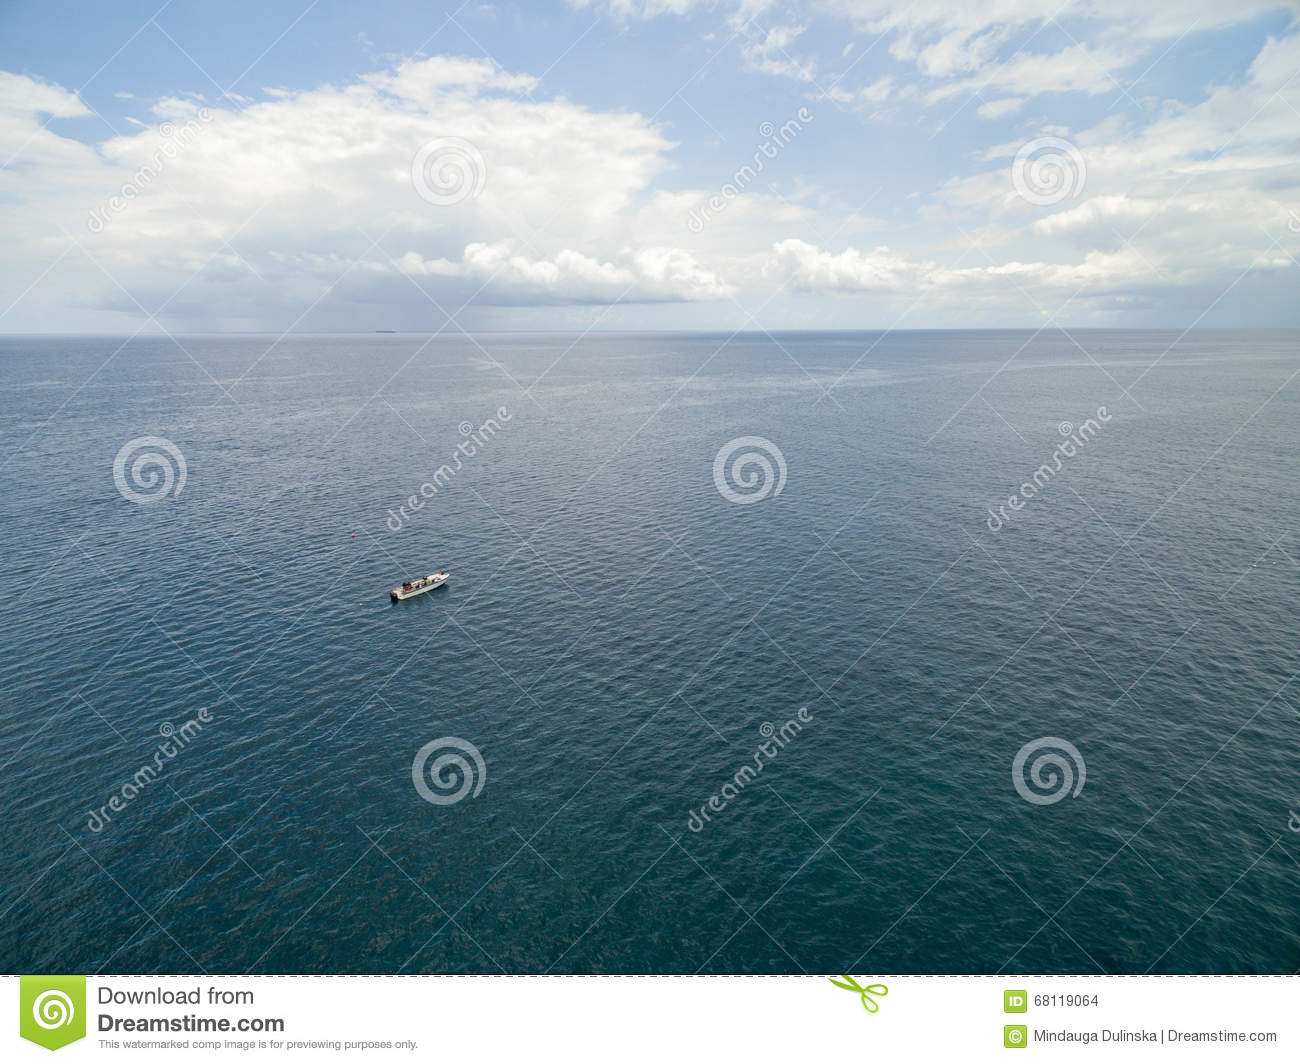 PORT LOUIS, MAURITIUS - OCTOBER 04, 2015: Lonely Boat in Indian Ocean. Close to Mauritius Coast.